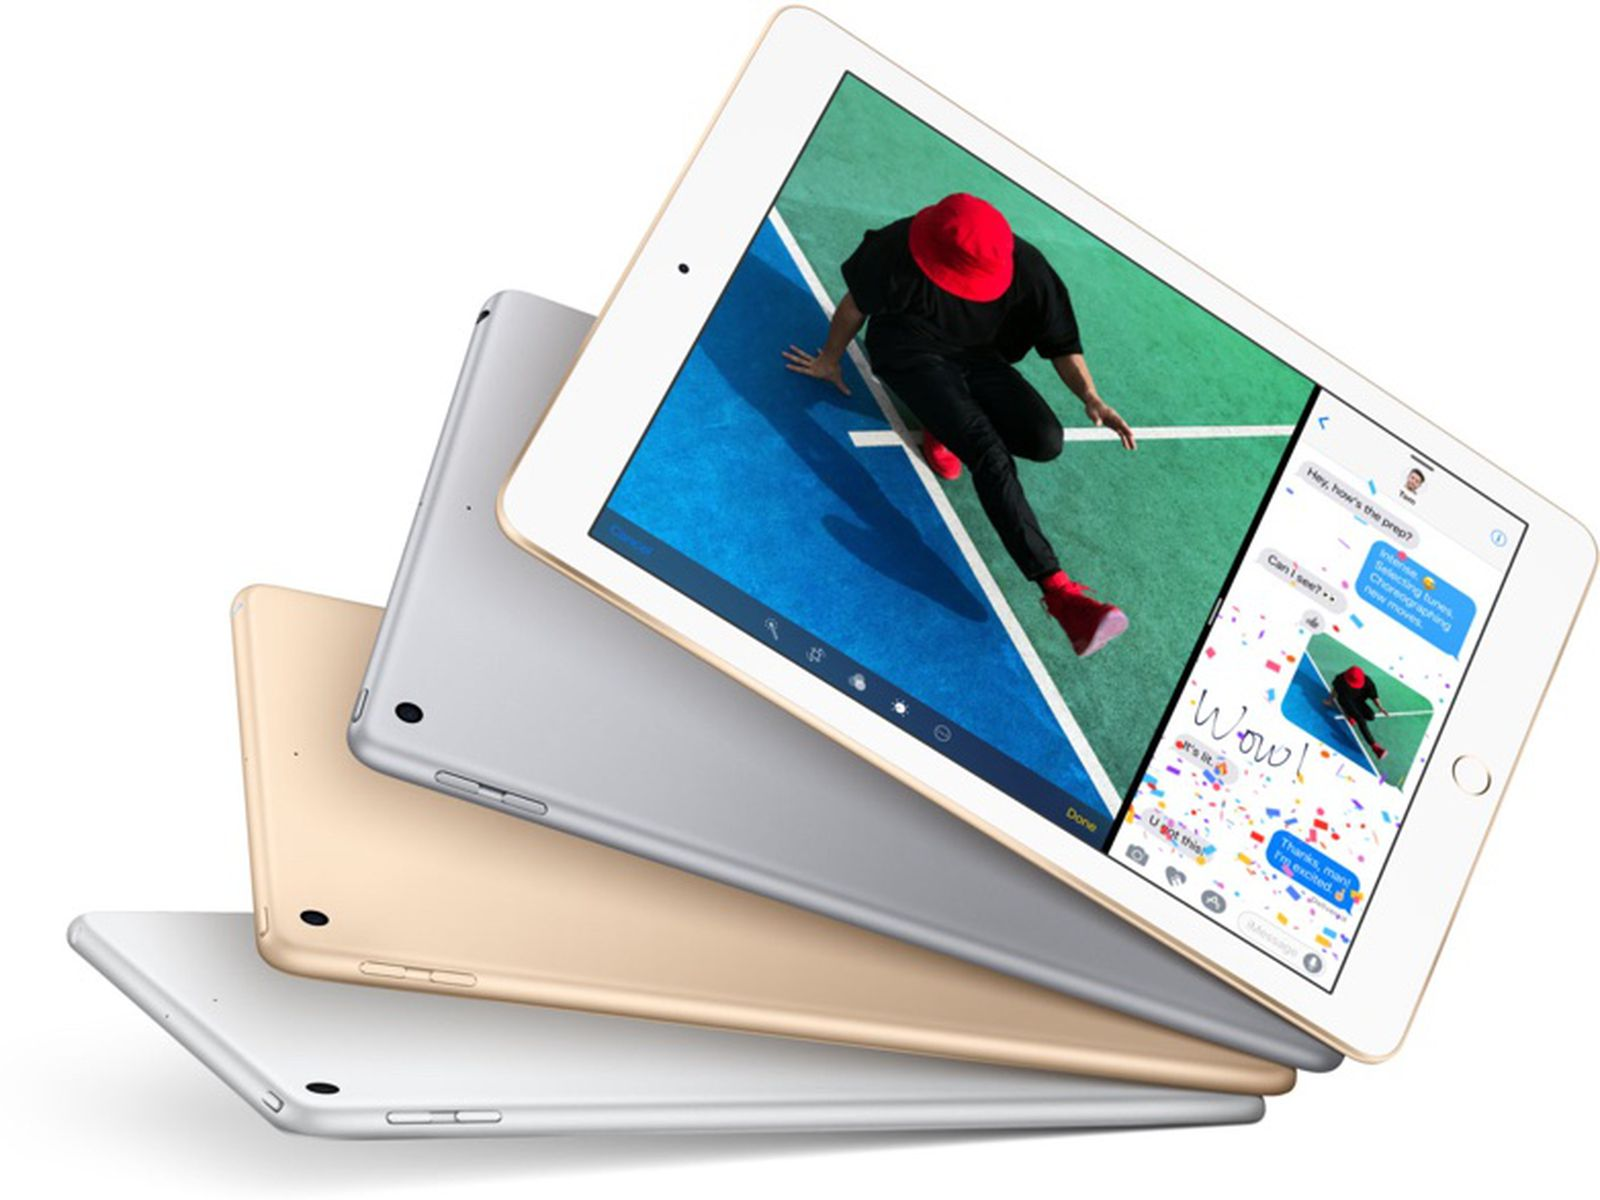 Black Friday 2017 Save 200 On Apple S Latest 9 7 Inch Ipad With Cellular On Two Year Contract Macrumors